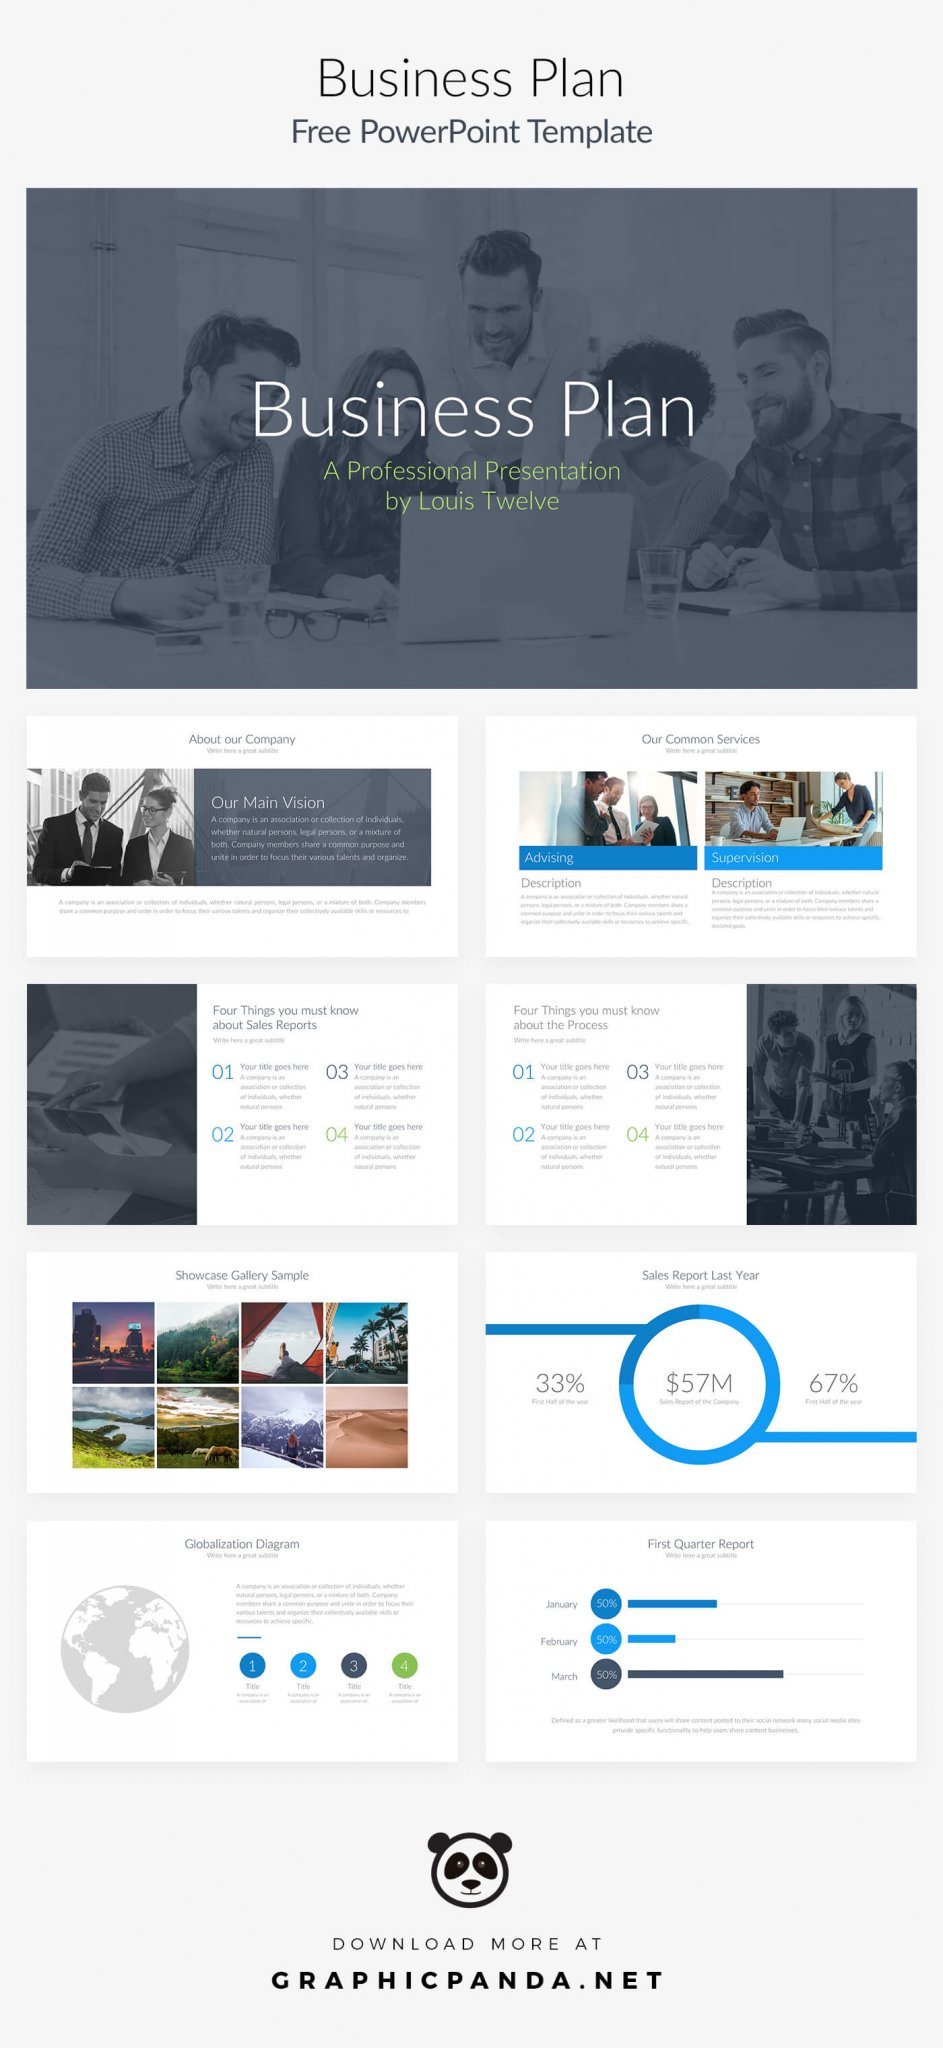 Free business plan powerpoint presentation template business plan free powerpoint themes powerpoint templates wajeb